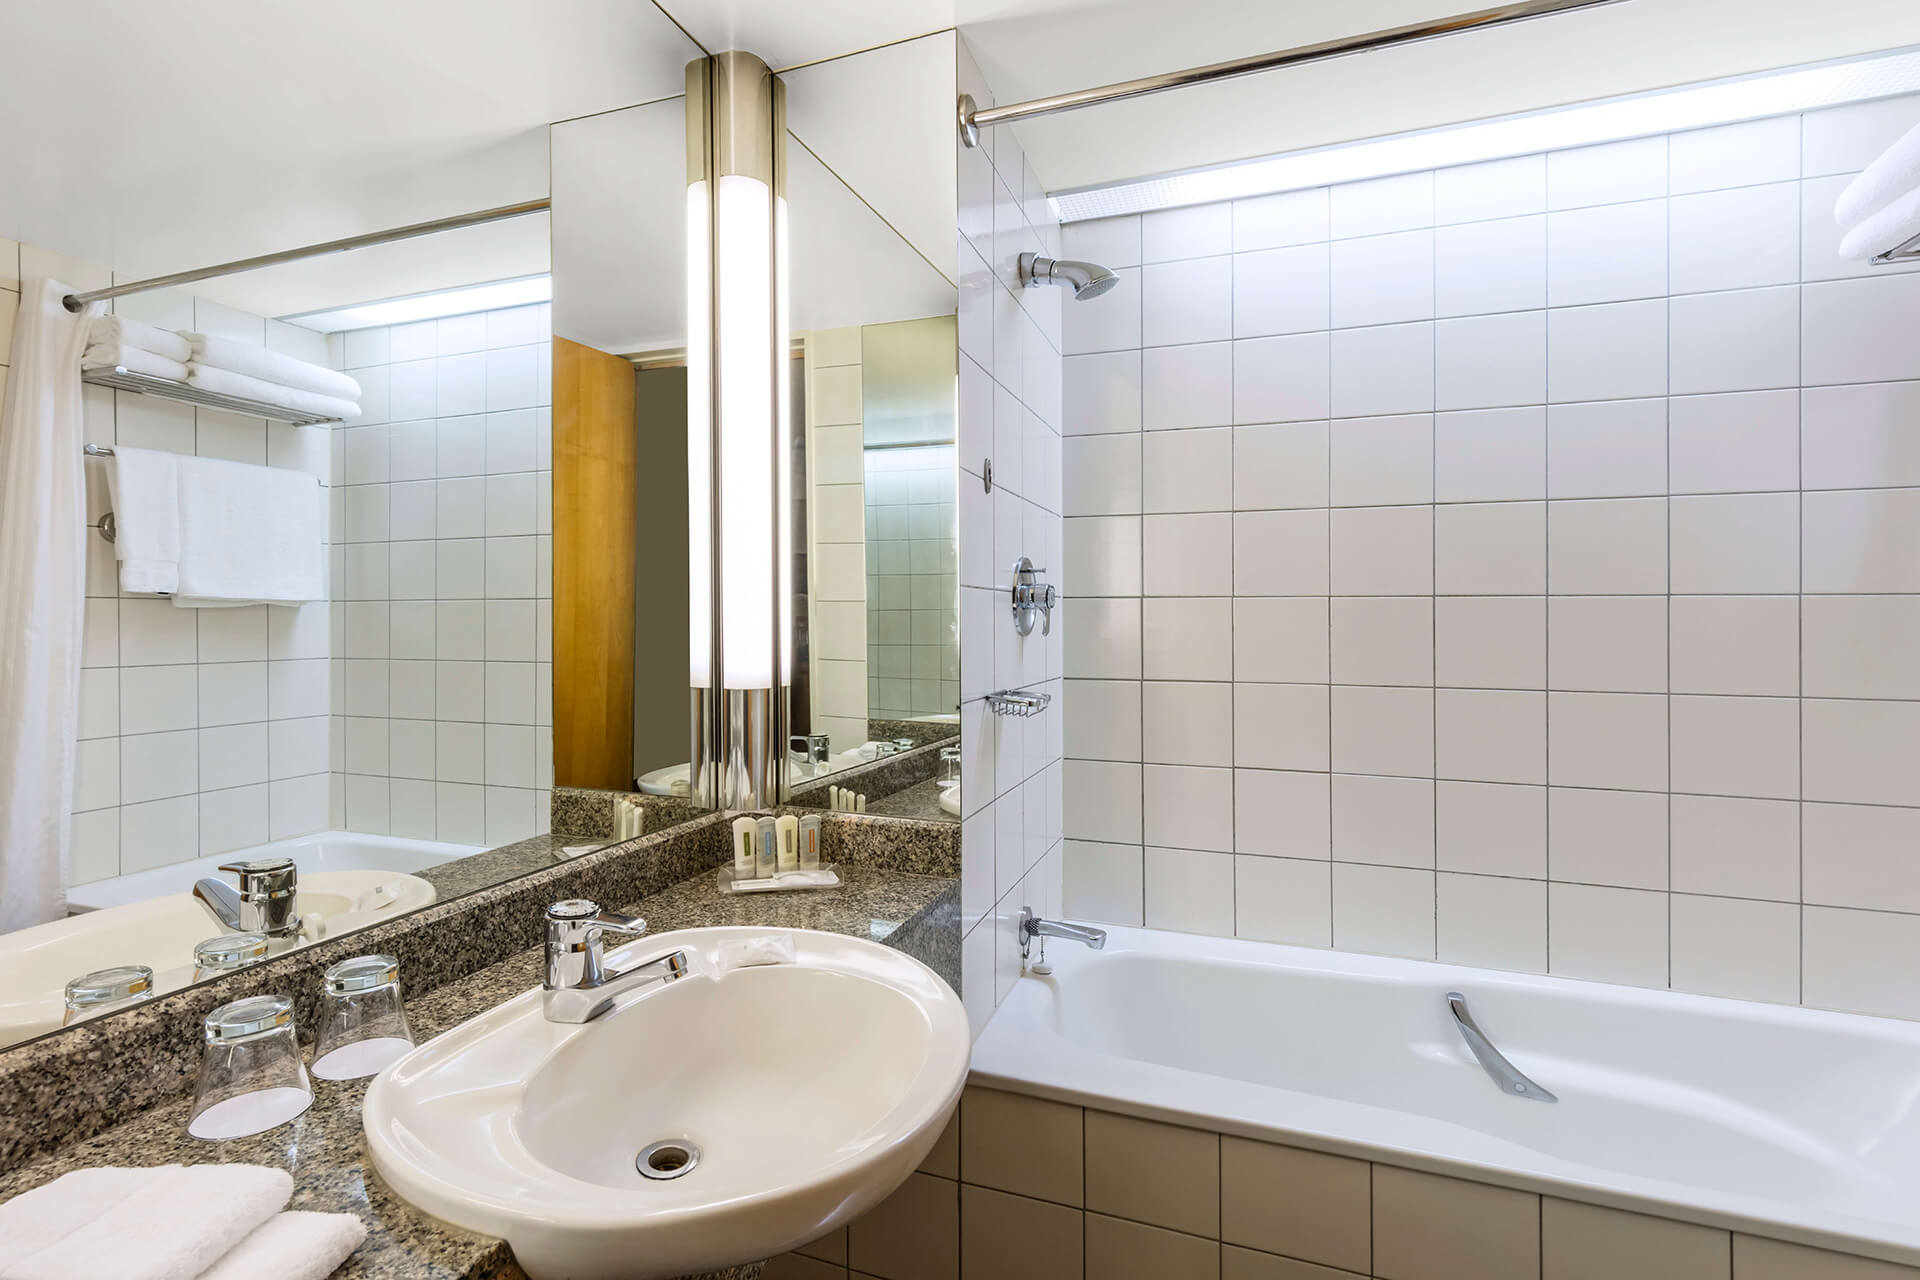 01.3-Superior-Room-and-Deluxe-Room-Bathroom